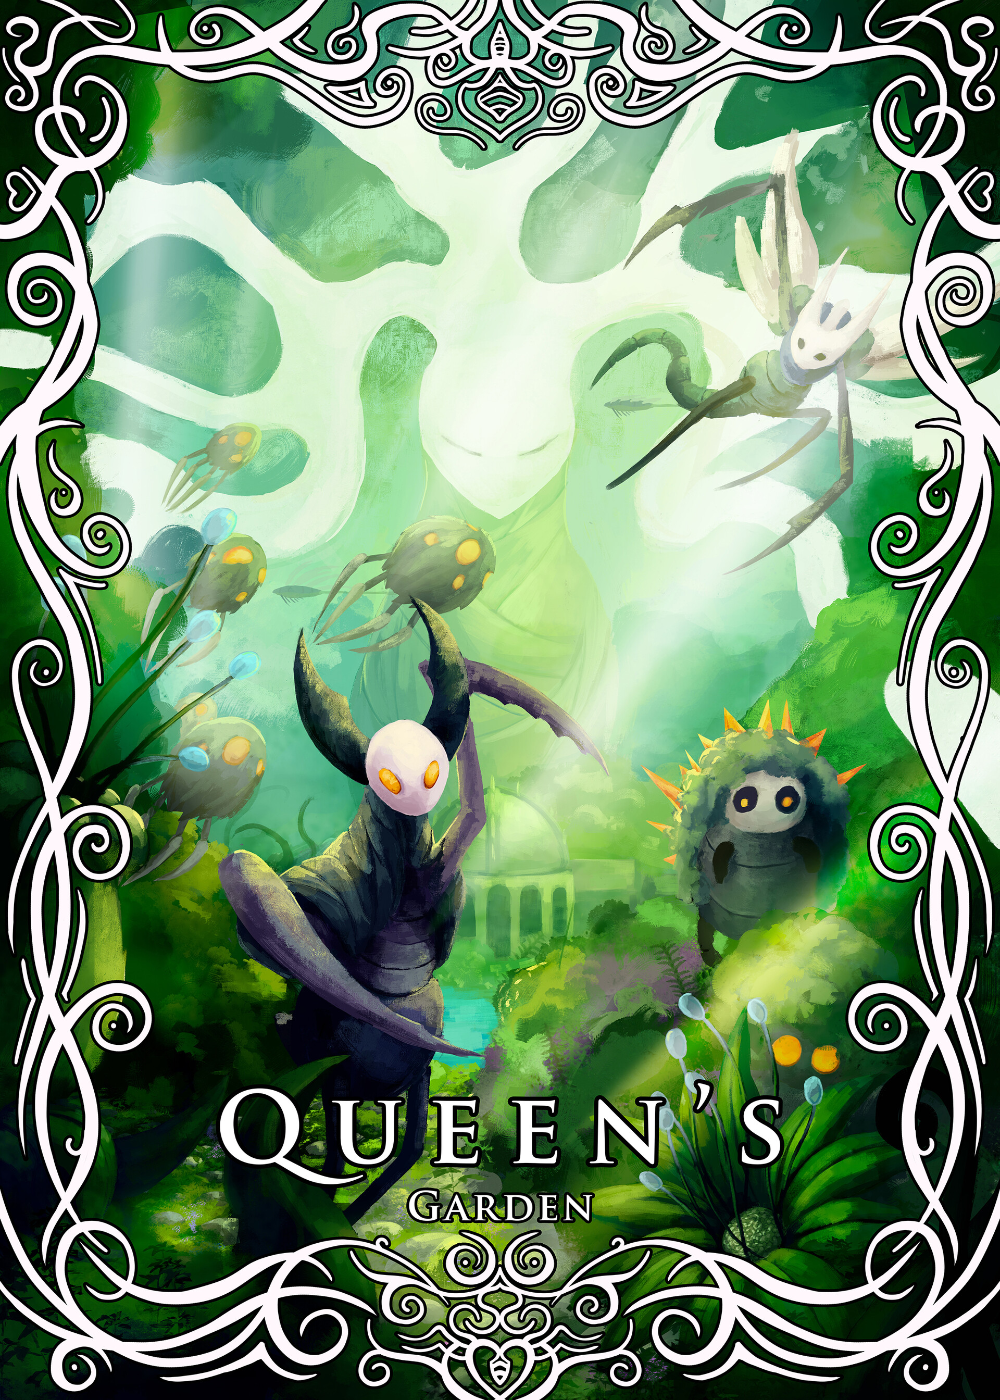 Queens Garden Hollow Knight : queens, garden, hollow, knight, ArtStation, Queen's, Garden, [Hollow, Knight, Serie],, Saphire, Océane, Knight,, Artwork,, Hollow, Night